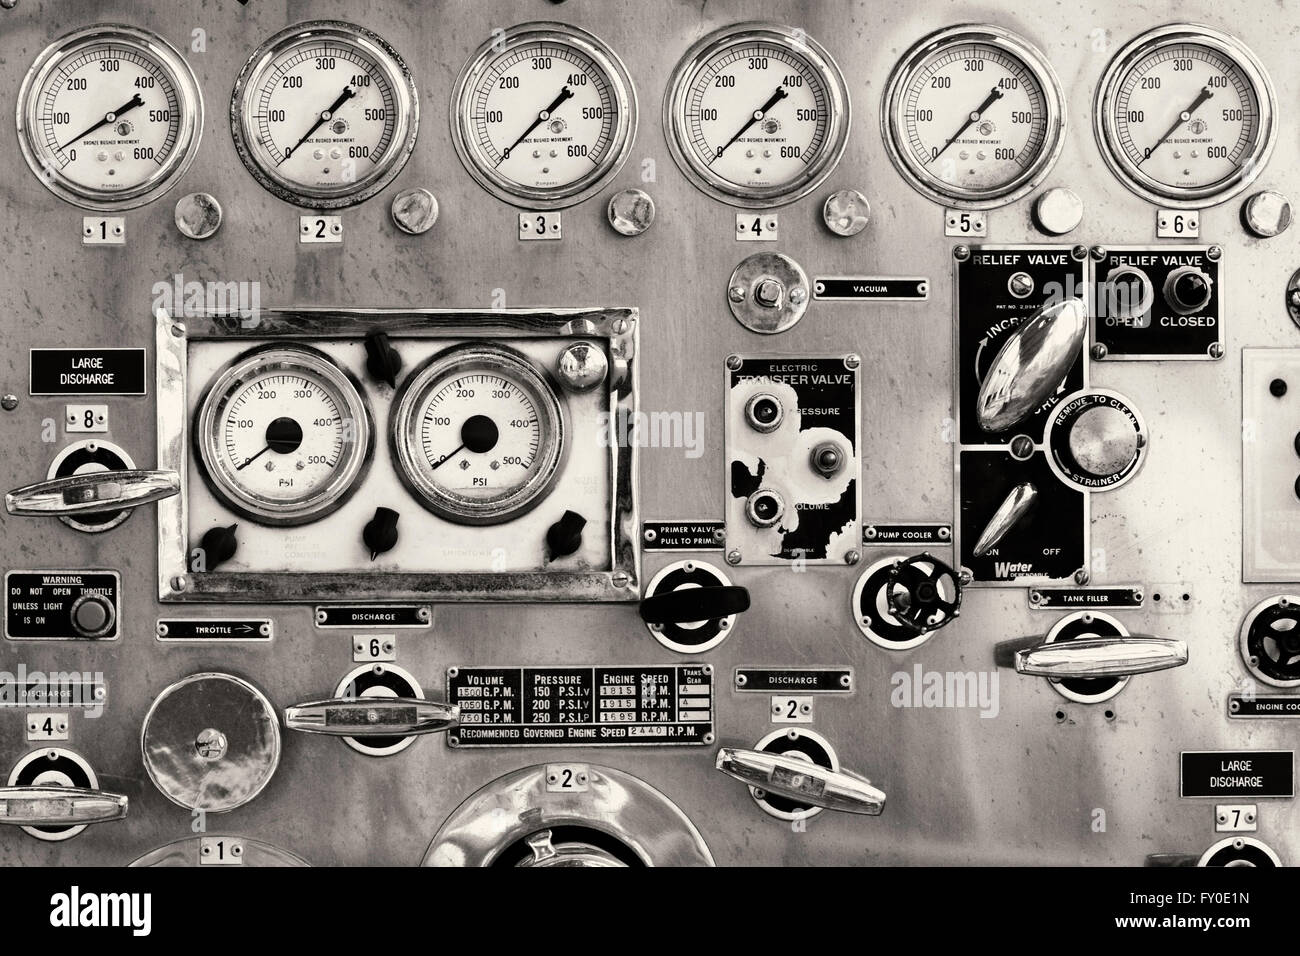 Detail photo of the instrument panel of an old firetruck displaying the various gages and levers . - Stock Image